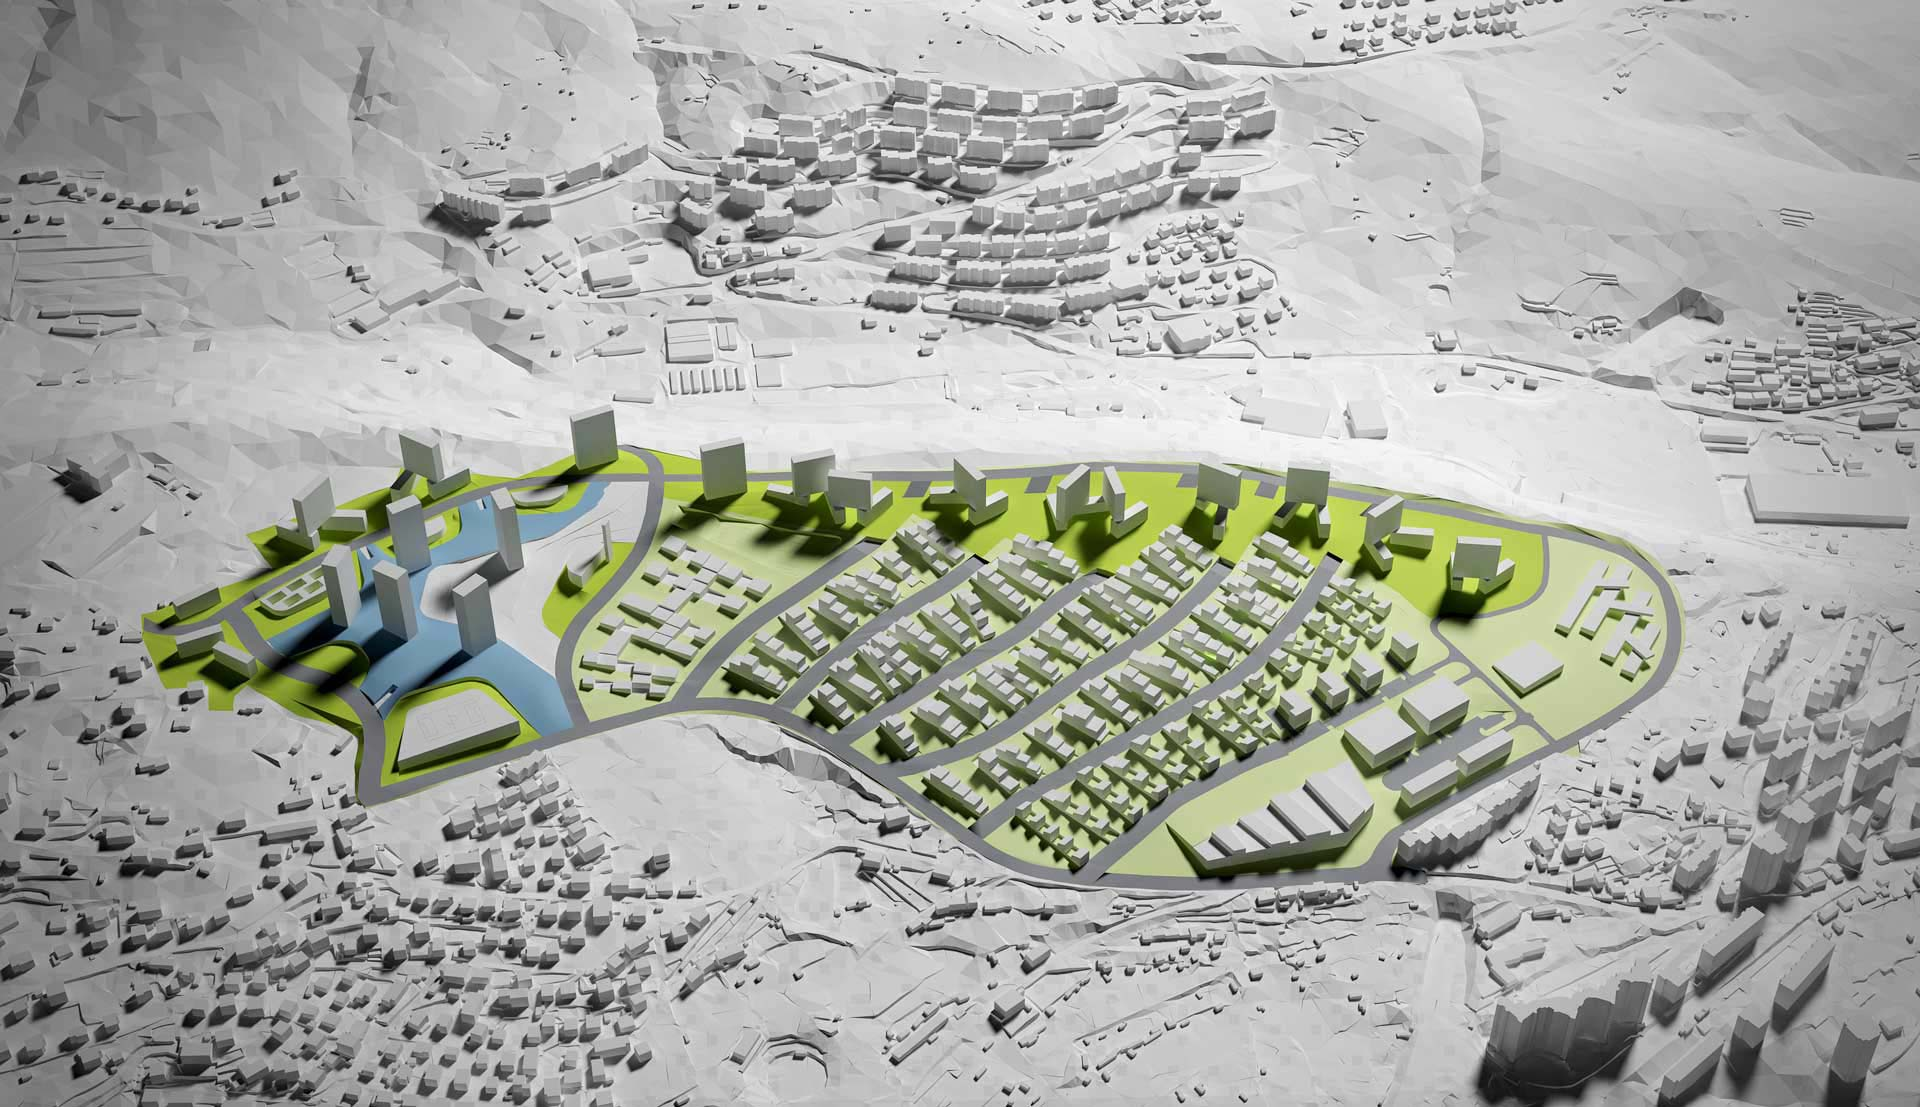 3D visualisation urban planning